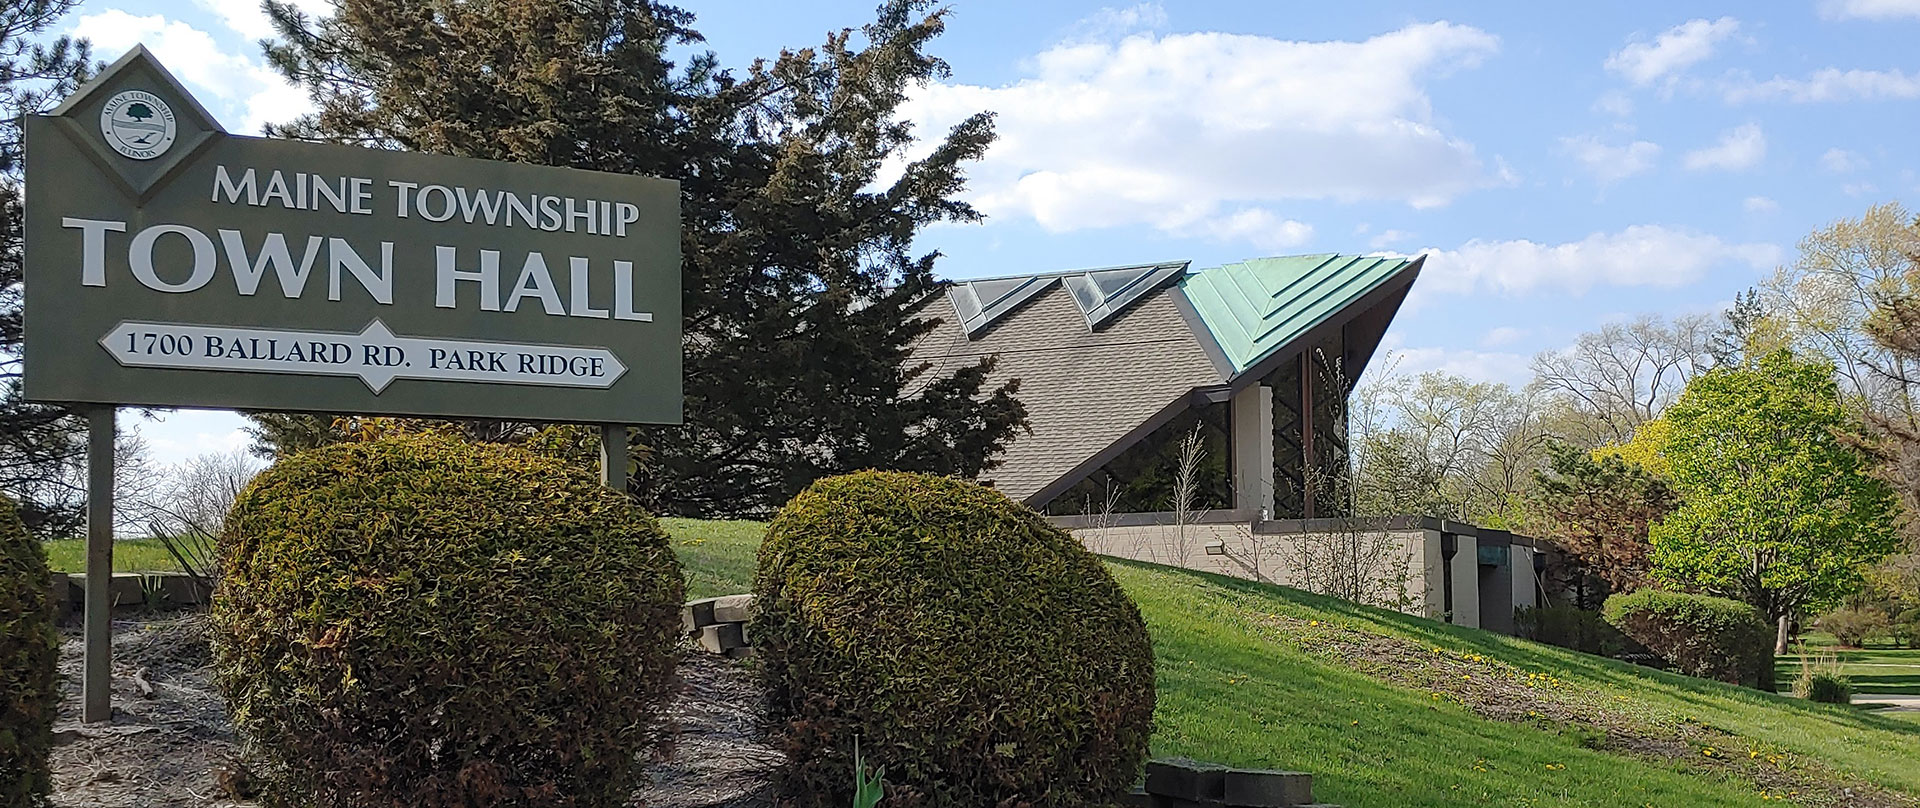 Maine Township Town Hall Building